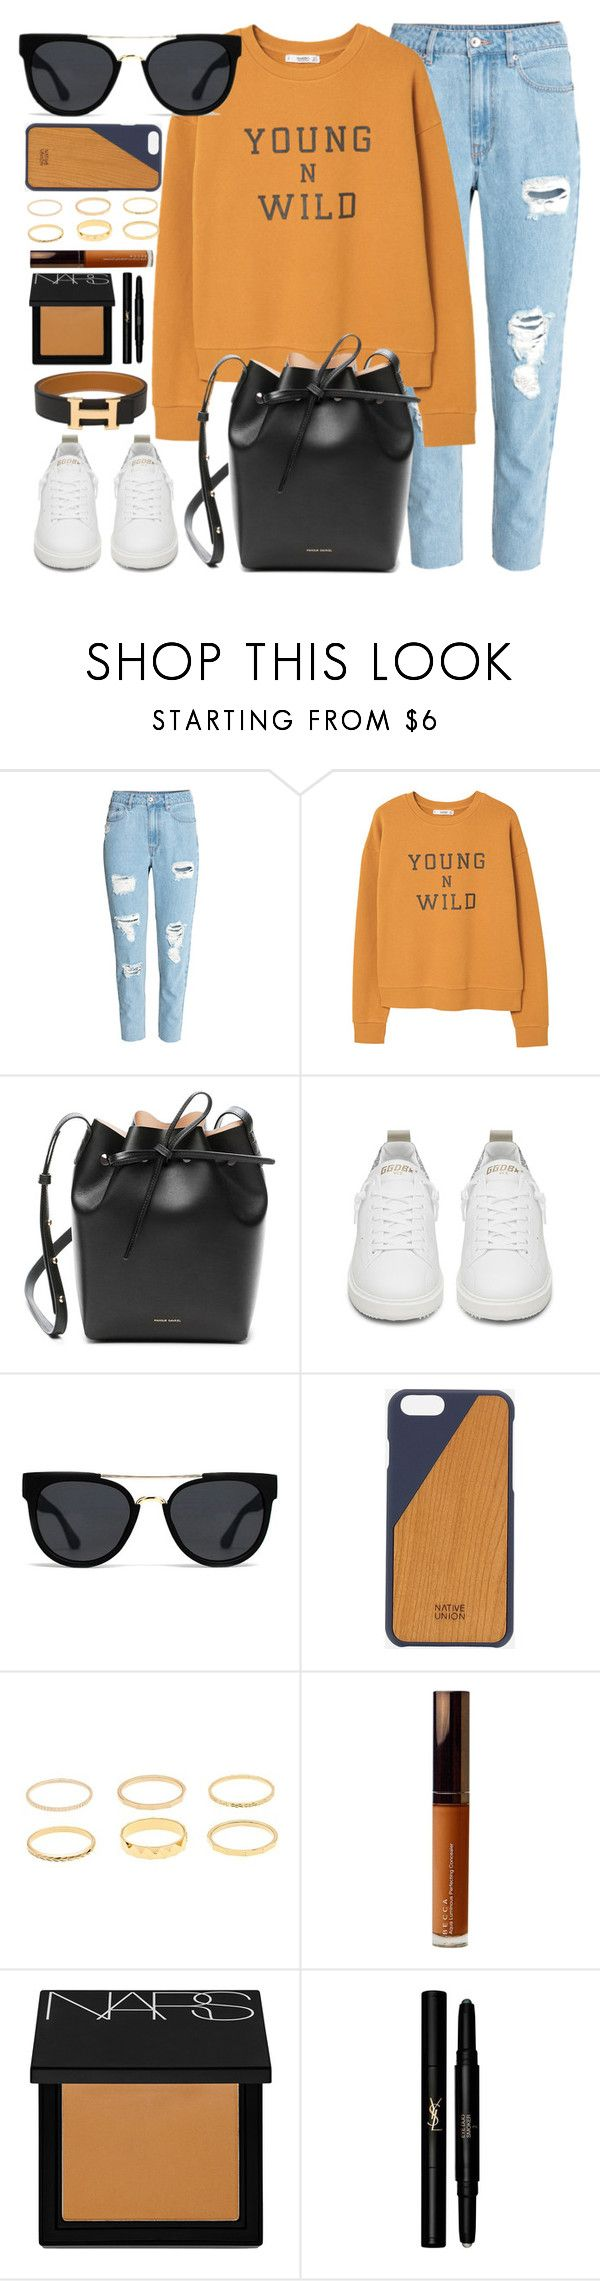 """""""Young & Wild"""" by smartbuyglasses-uk ❤ liked on Polyvore featuring MANGO, Mansur Gavriel, Golden Goose, Quay, Native Union, Becca, NARS Cosmetics, Yves Saint Laurent, Hermès and orange"""